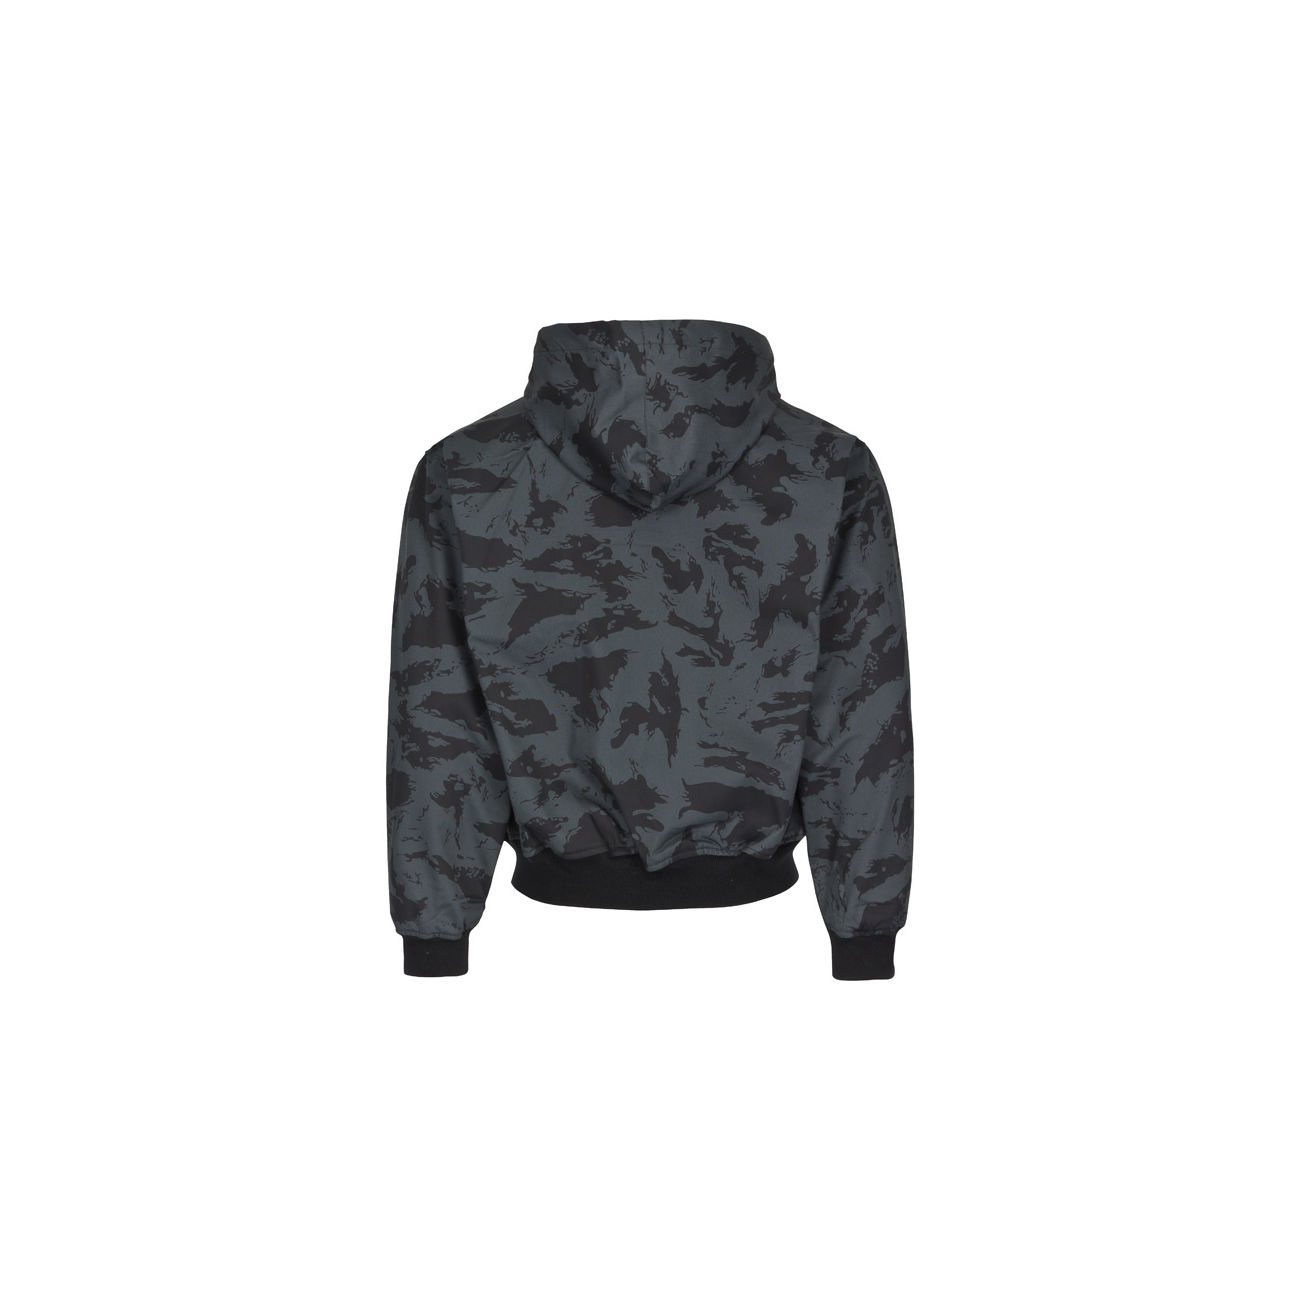 Harrington Jacke, russian-night-camo mit Kapuze 1